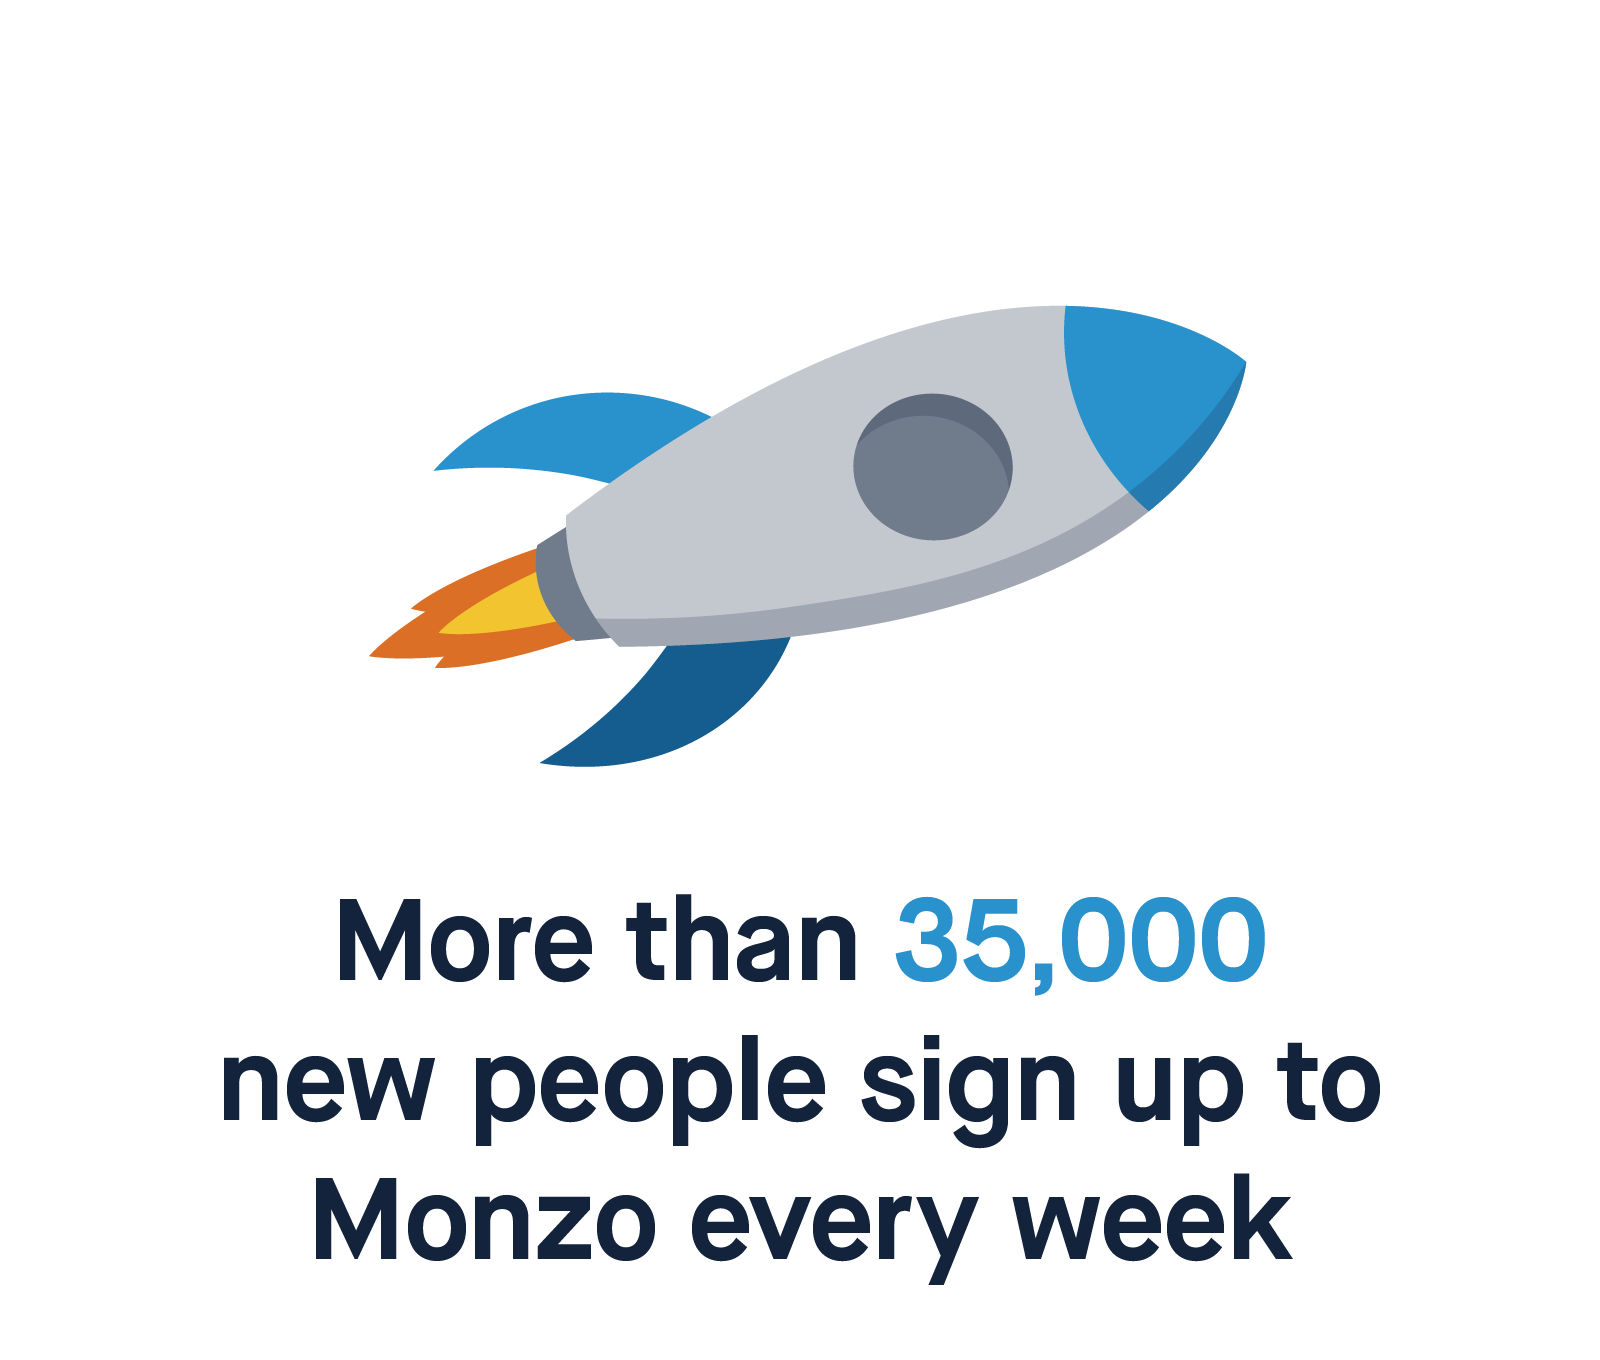 More than 35,000 new people sign up to Monzo every week